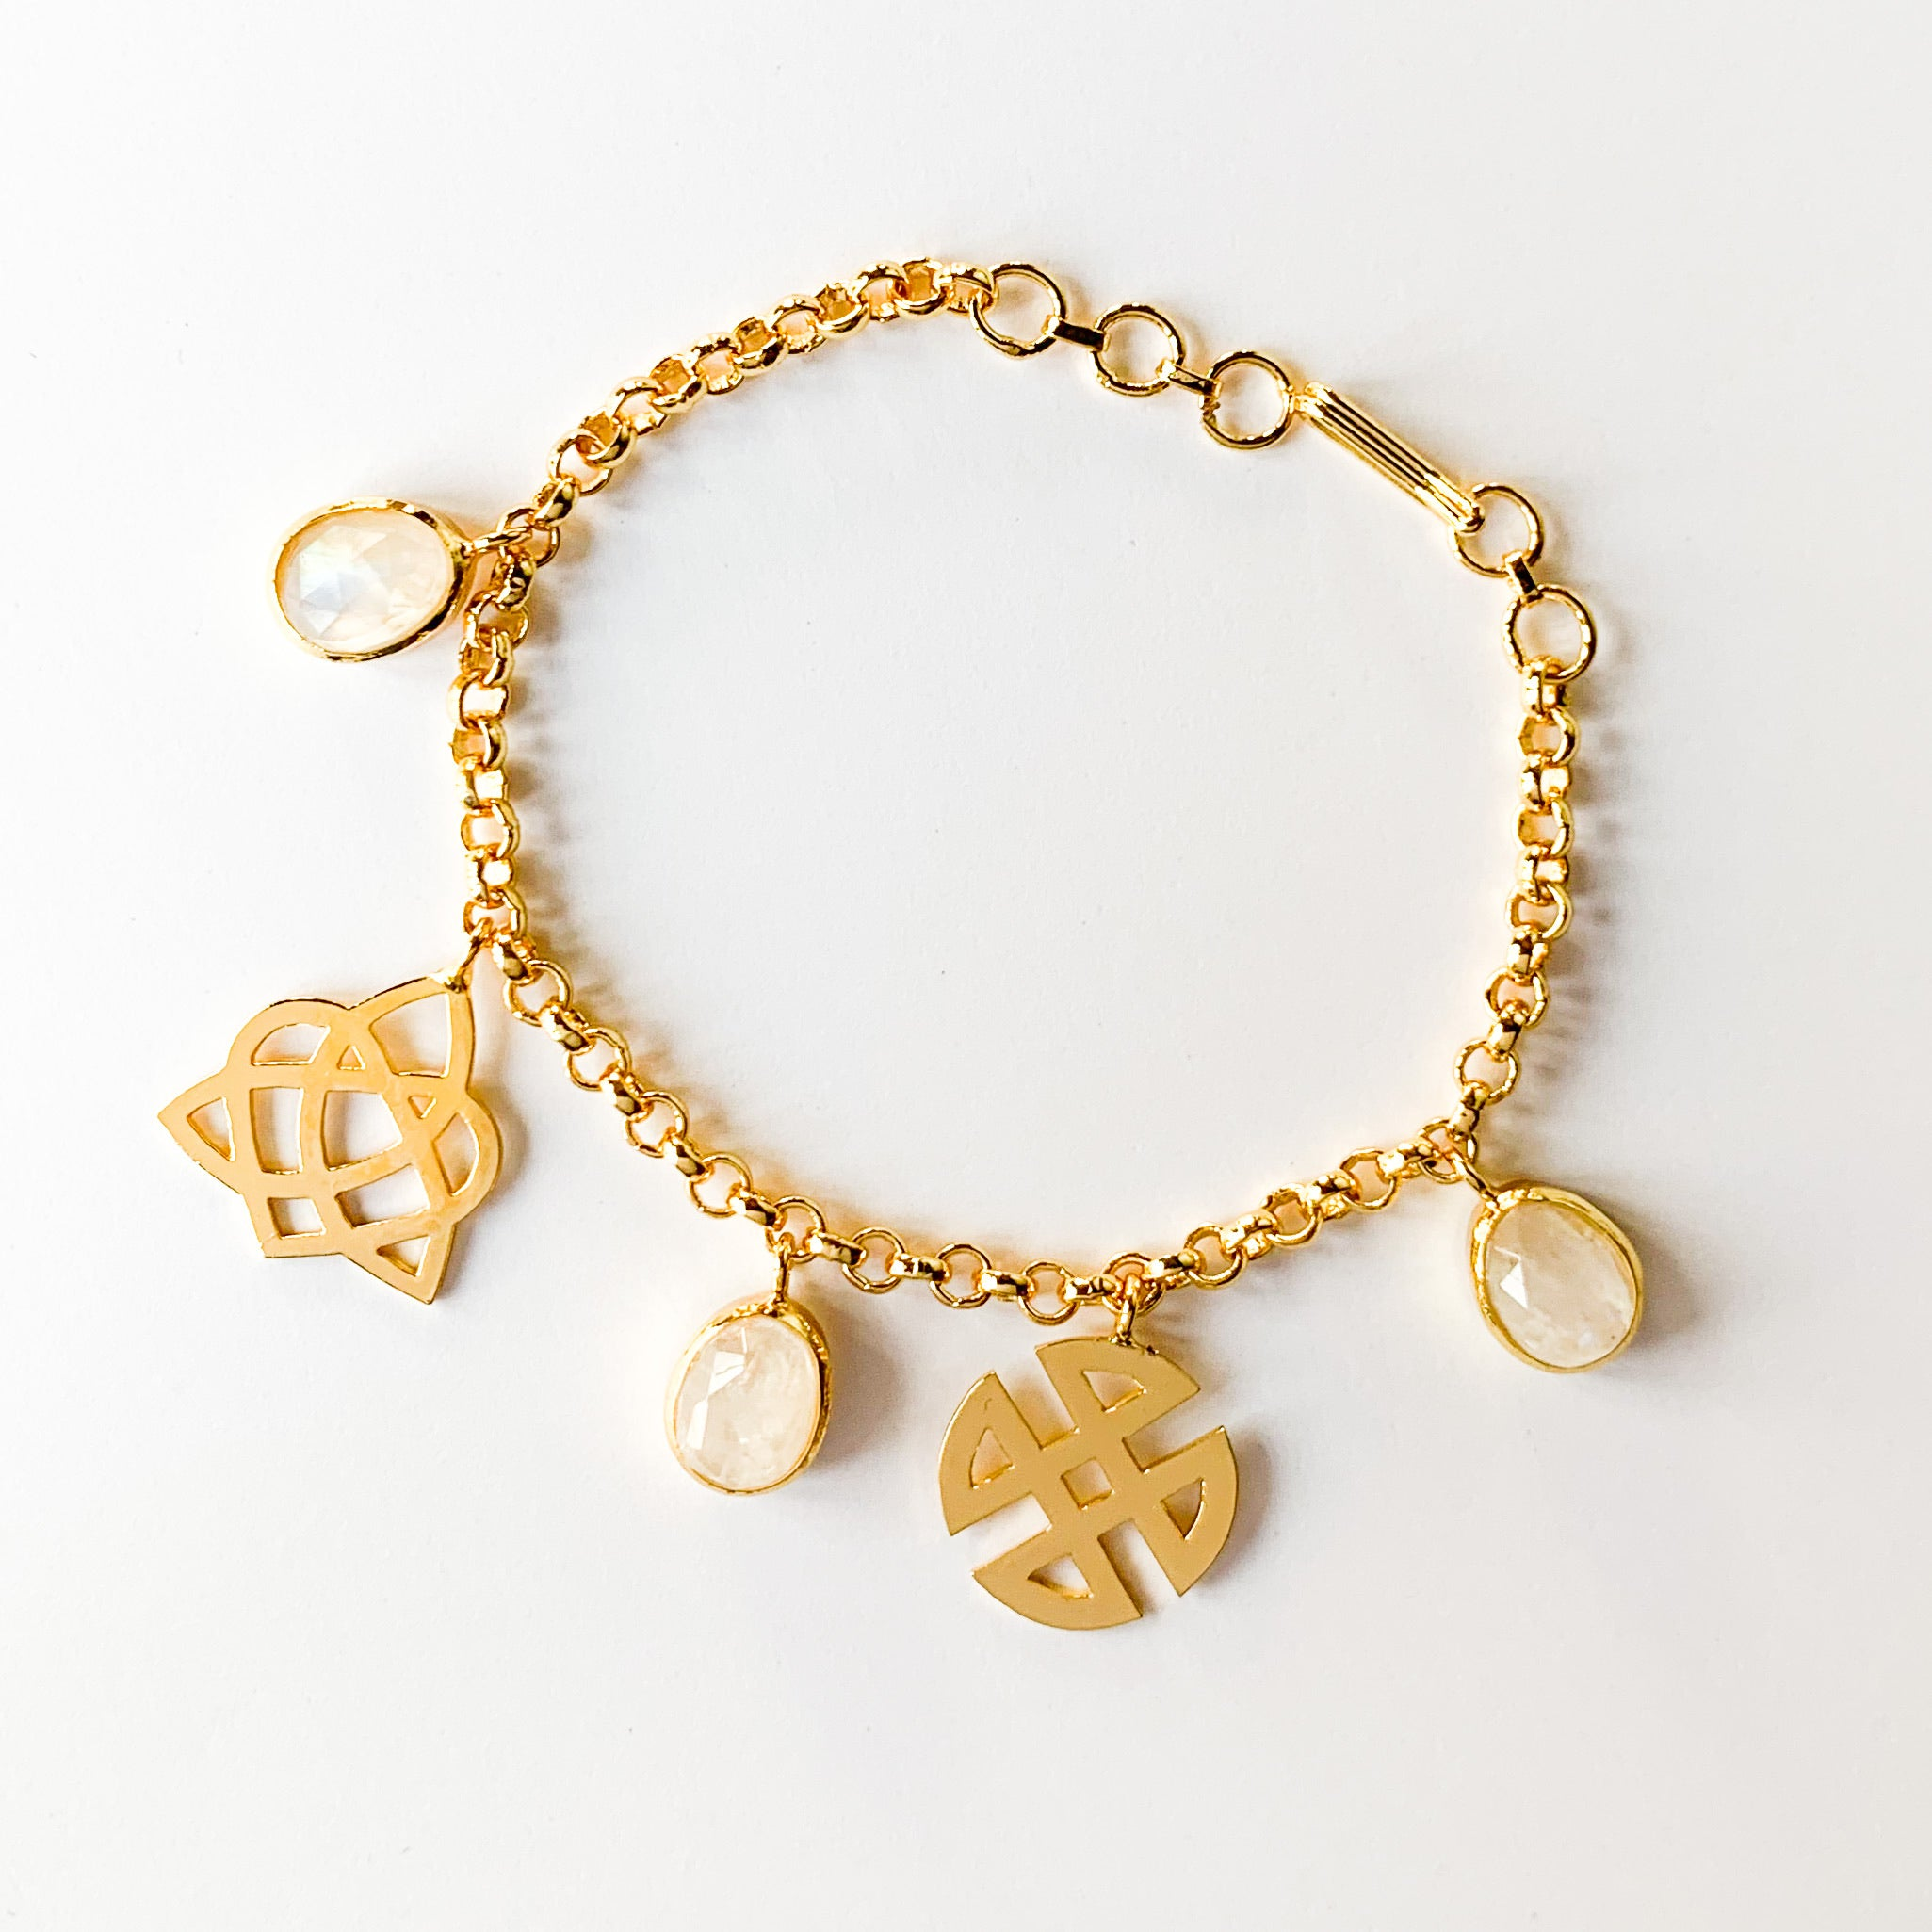 Love & Shield Charm Bracelet